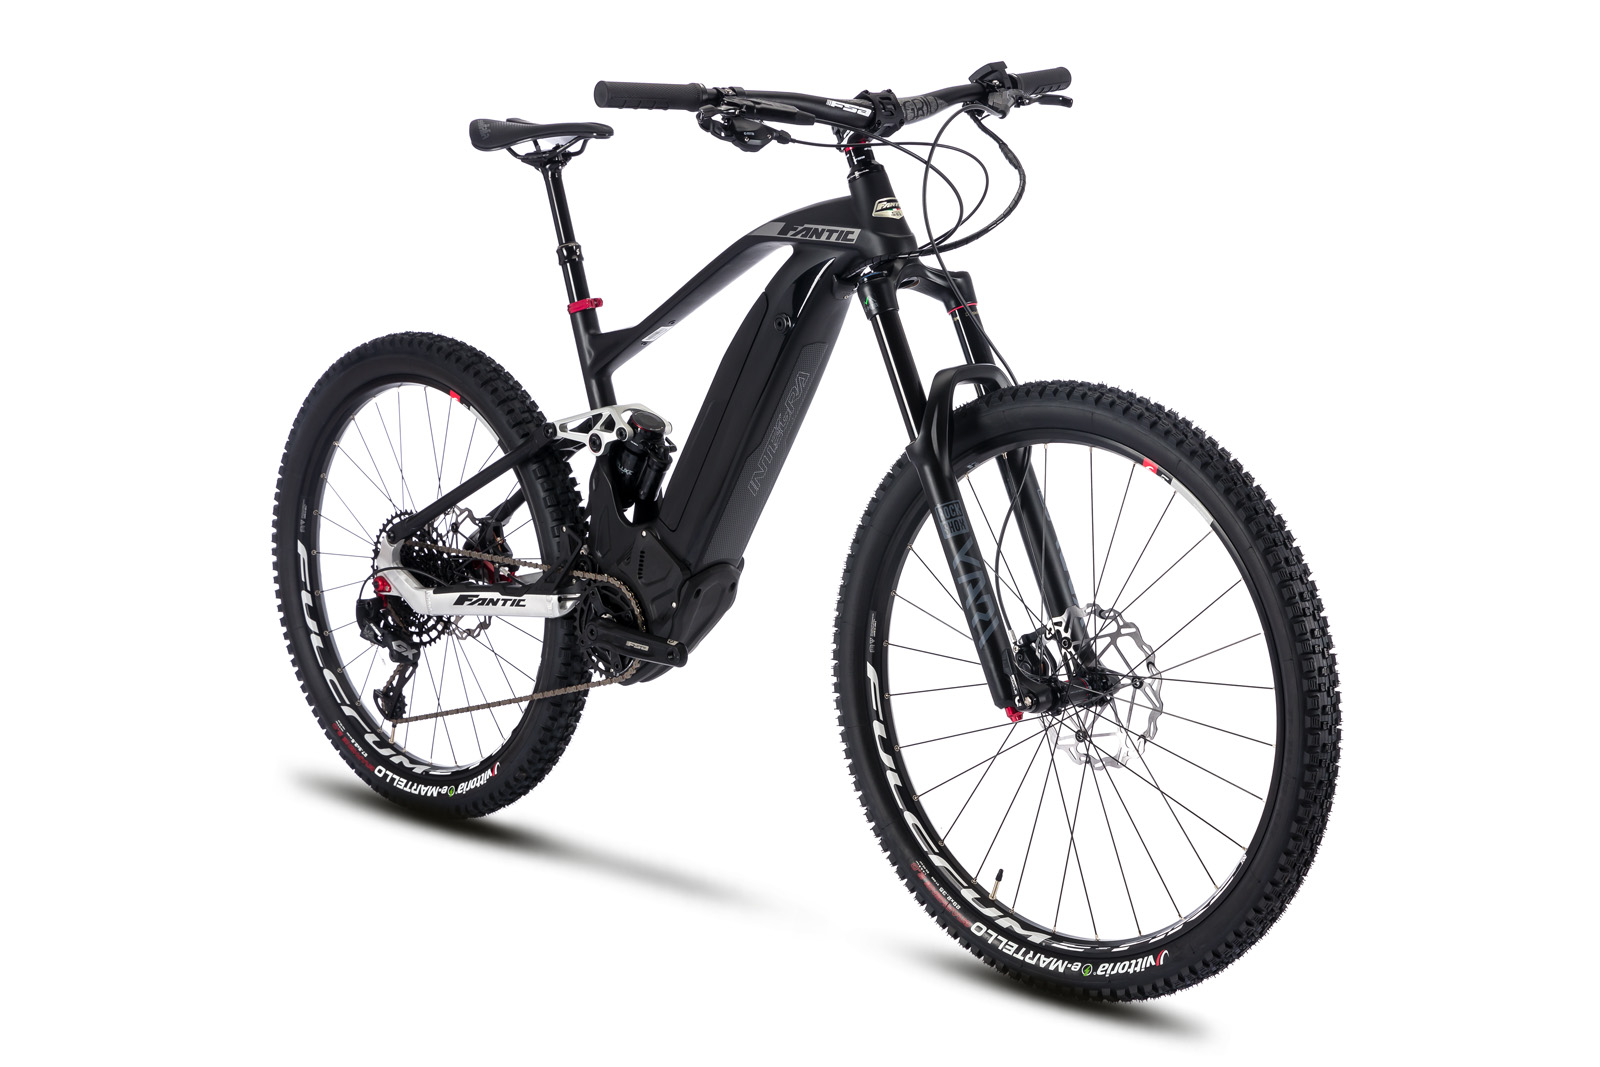 Ebike Fantic Integra XMF 1.7 carbonio ALL M 2021